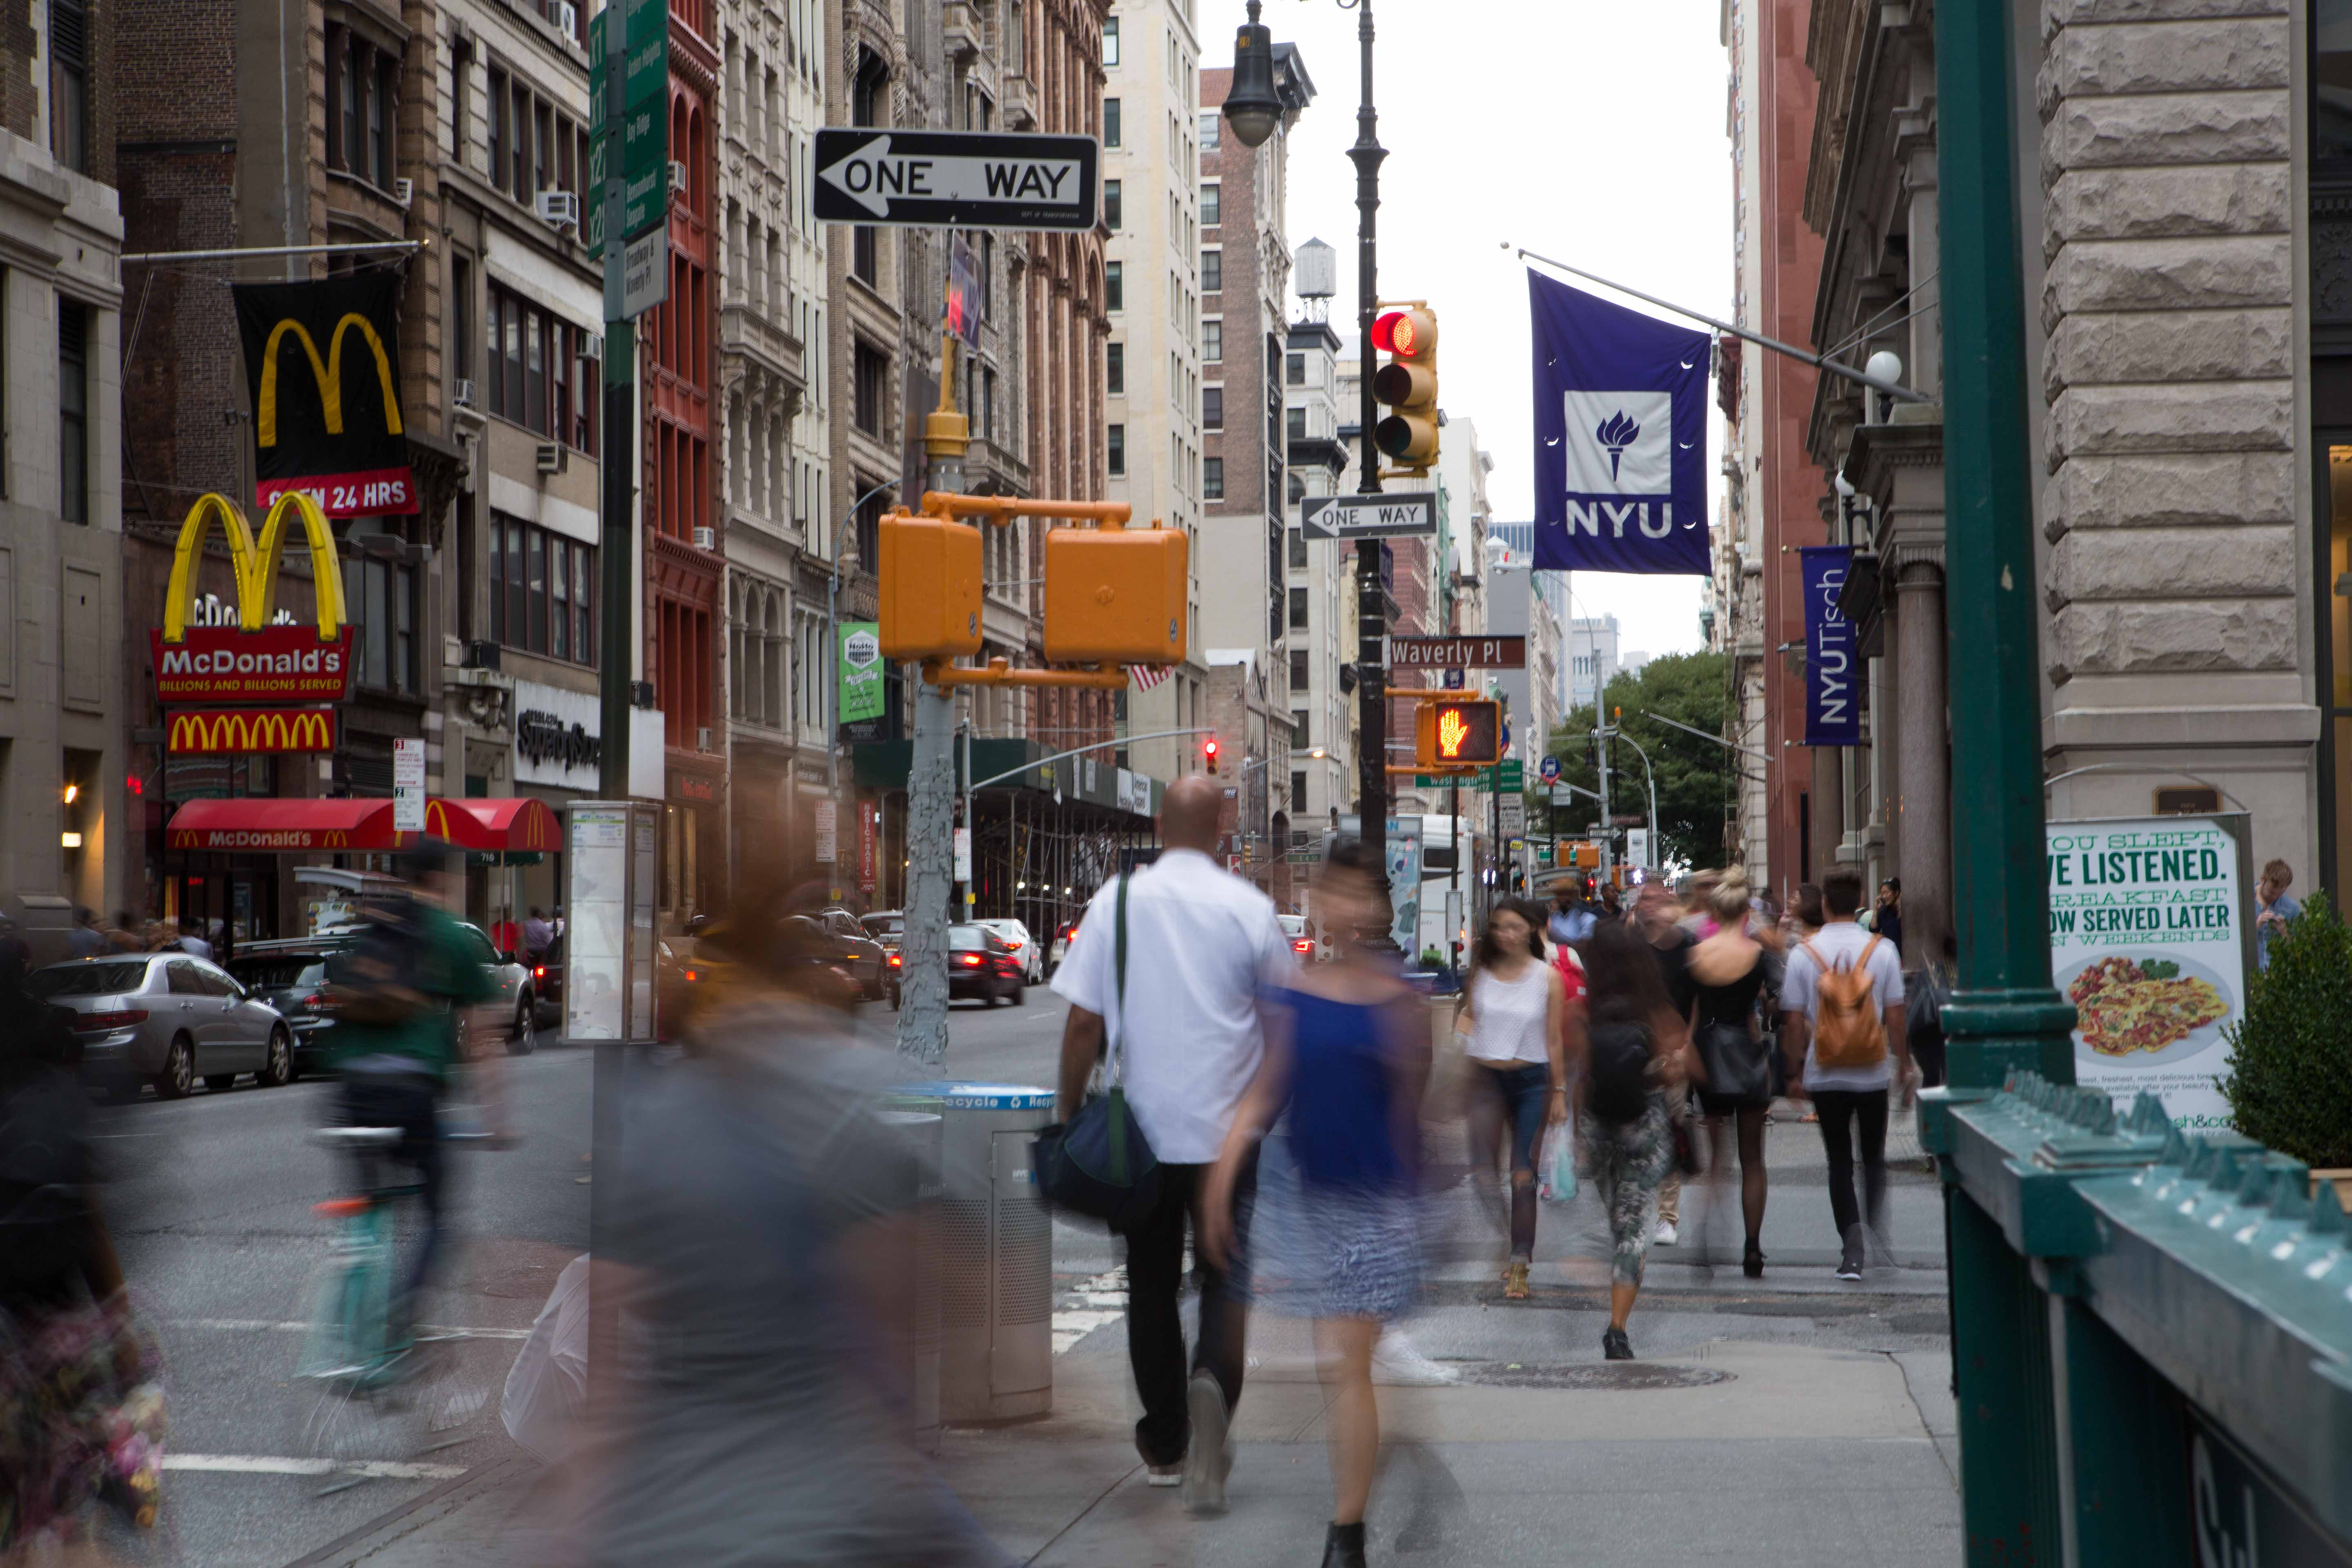 Amid claims that NYU does not foster an inclusive environment for people of color, a new lawsuit against the university claims that an employee faced discrimination in his time here.